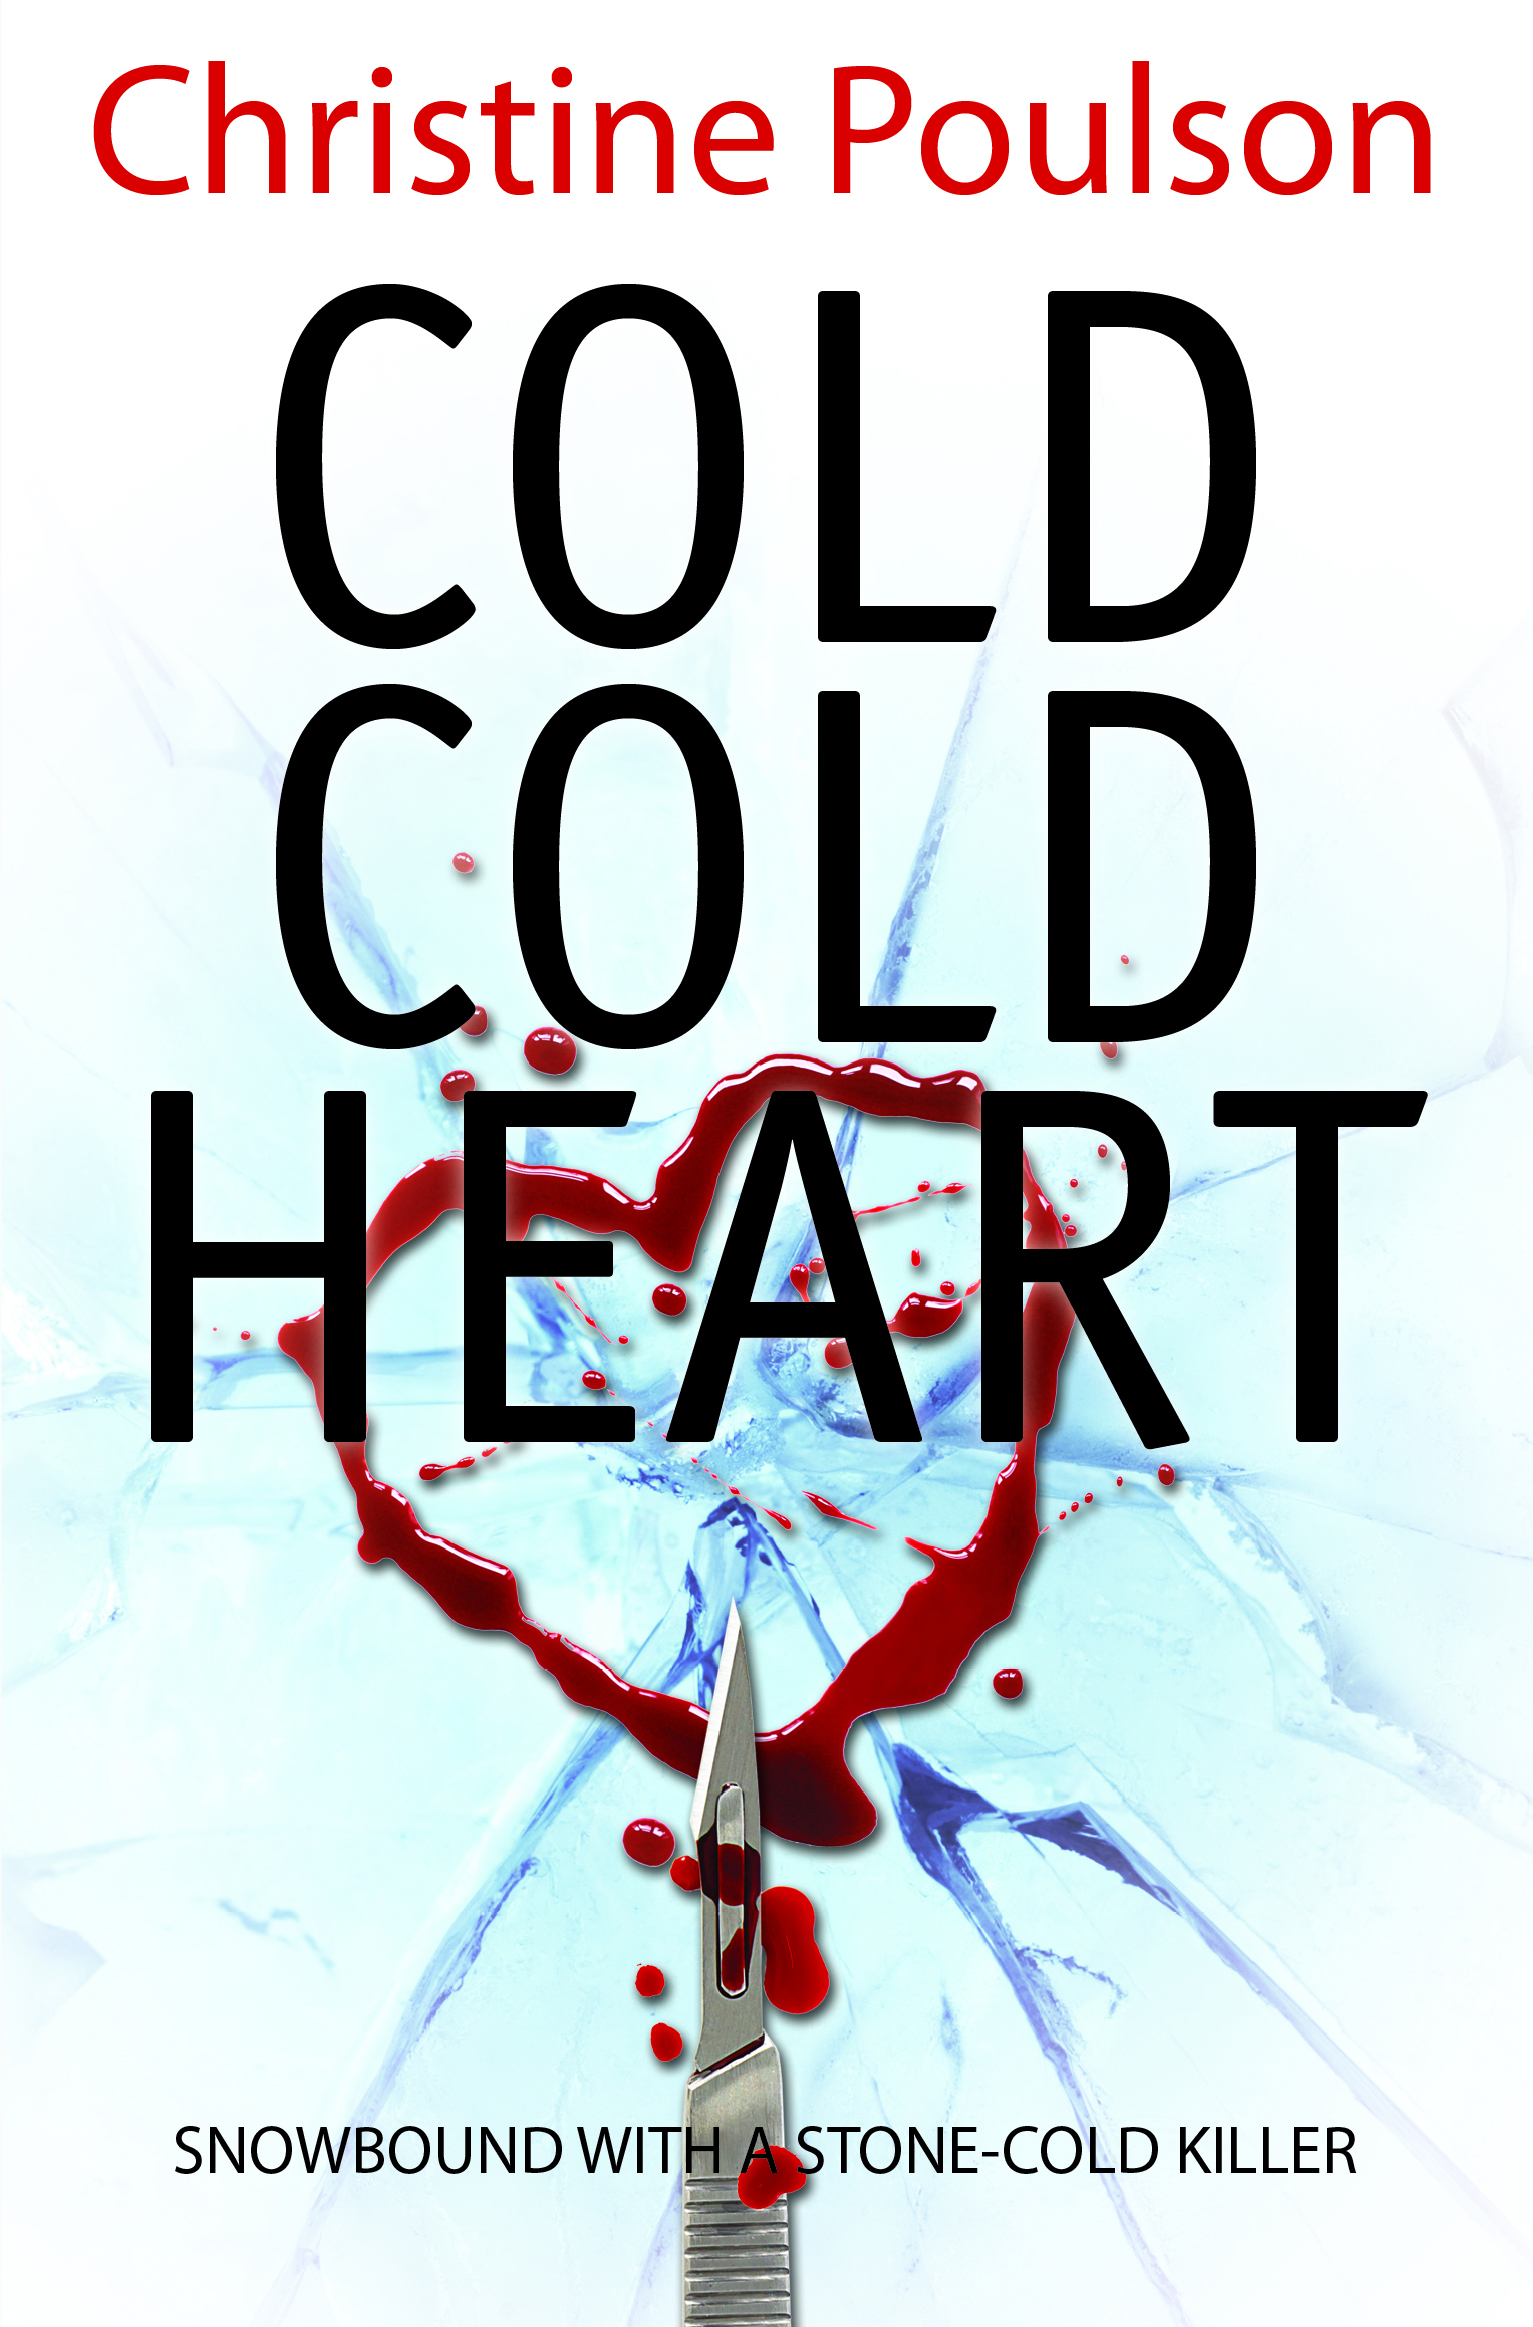 Cold, Cold Heart: Christine Poulson talks to Crime Time